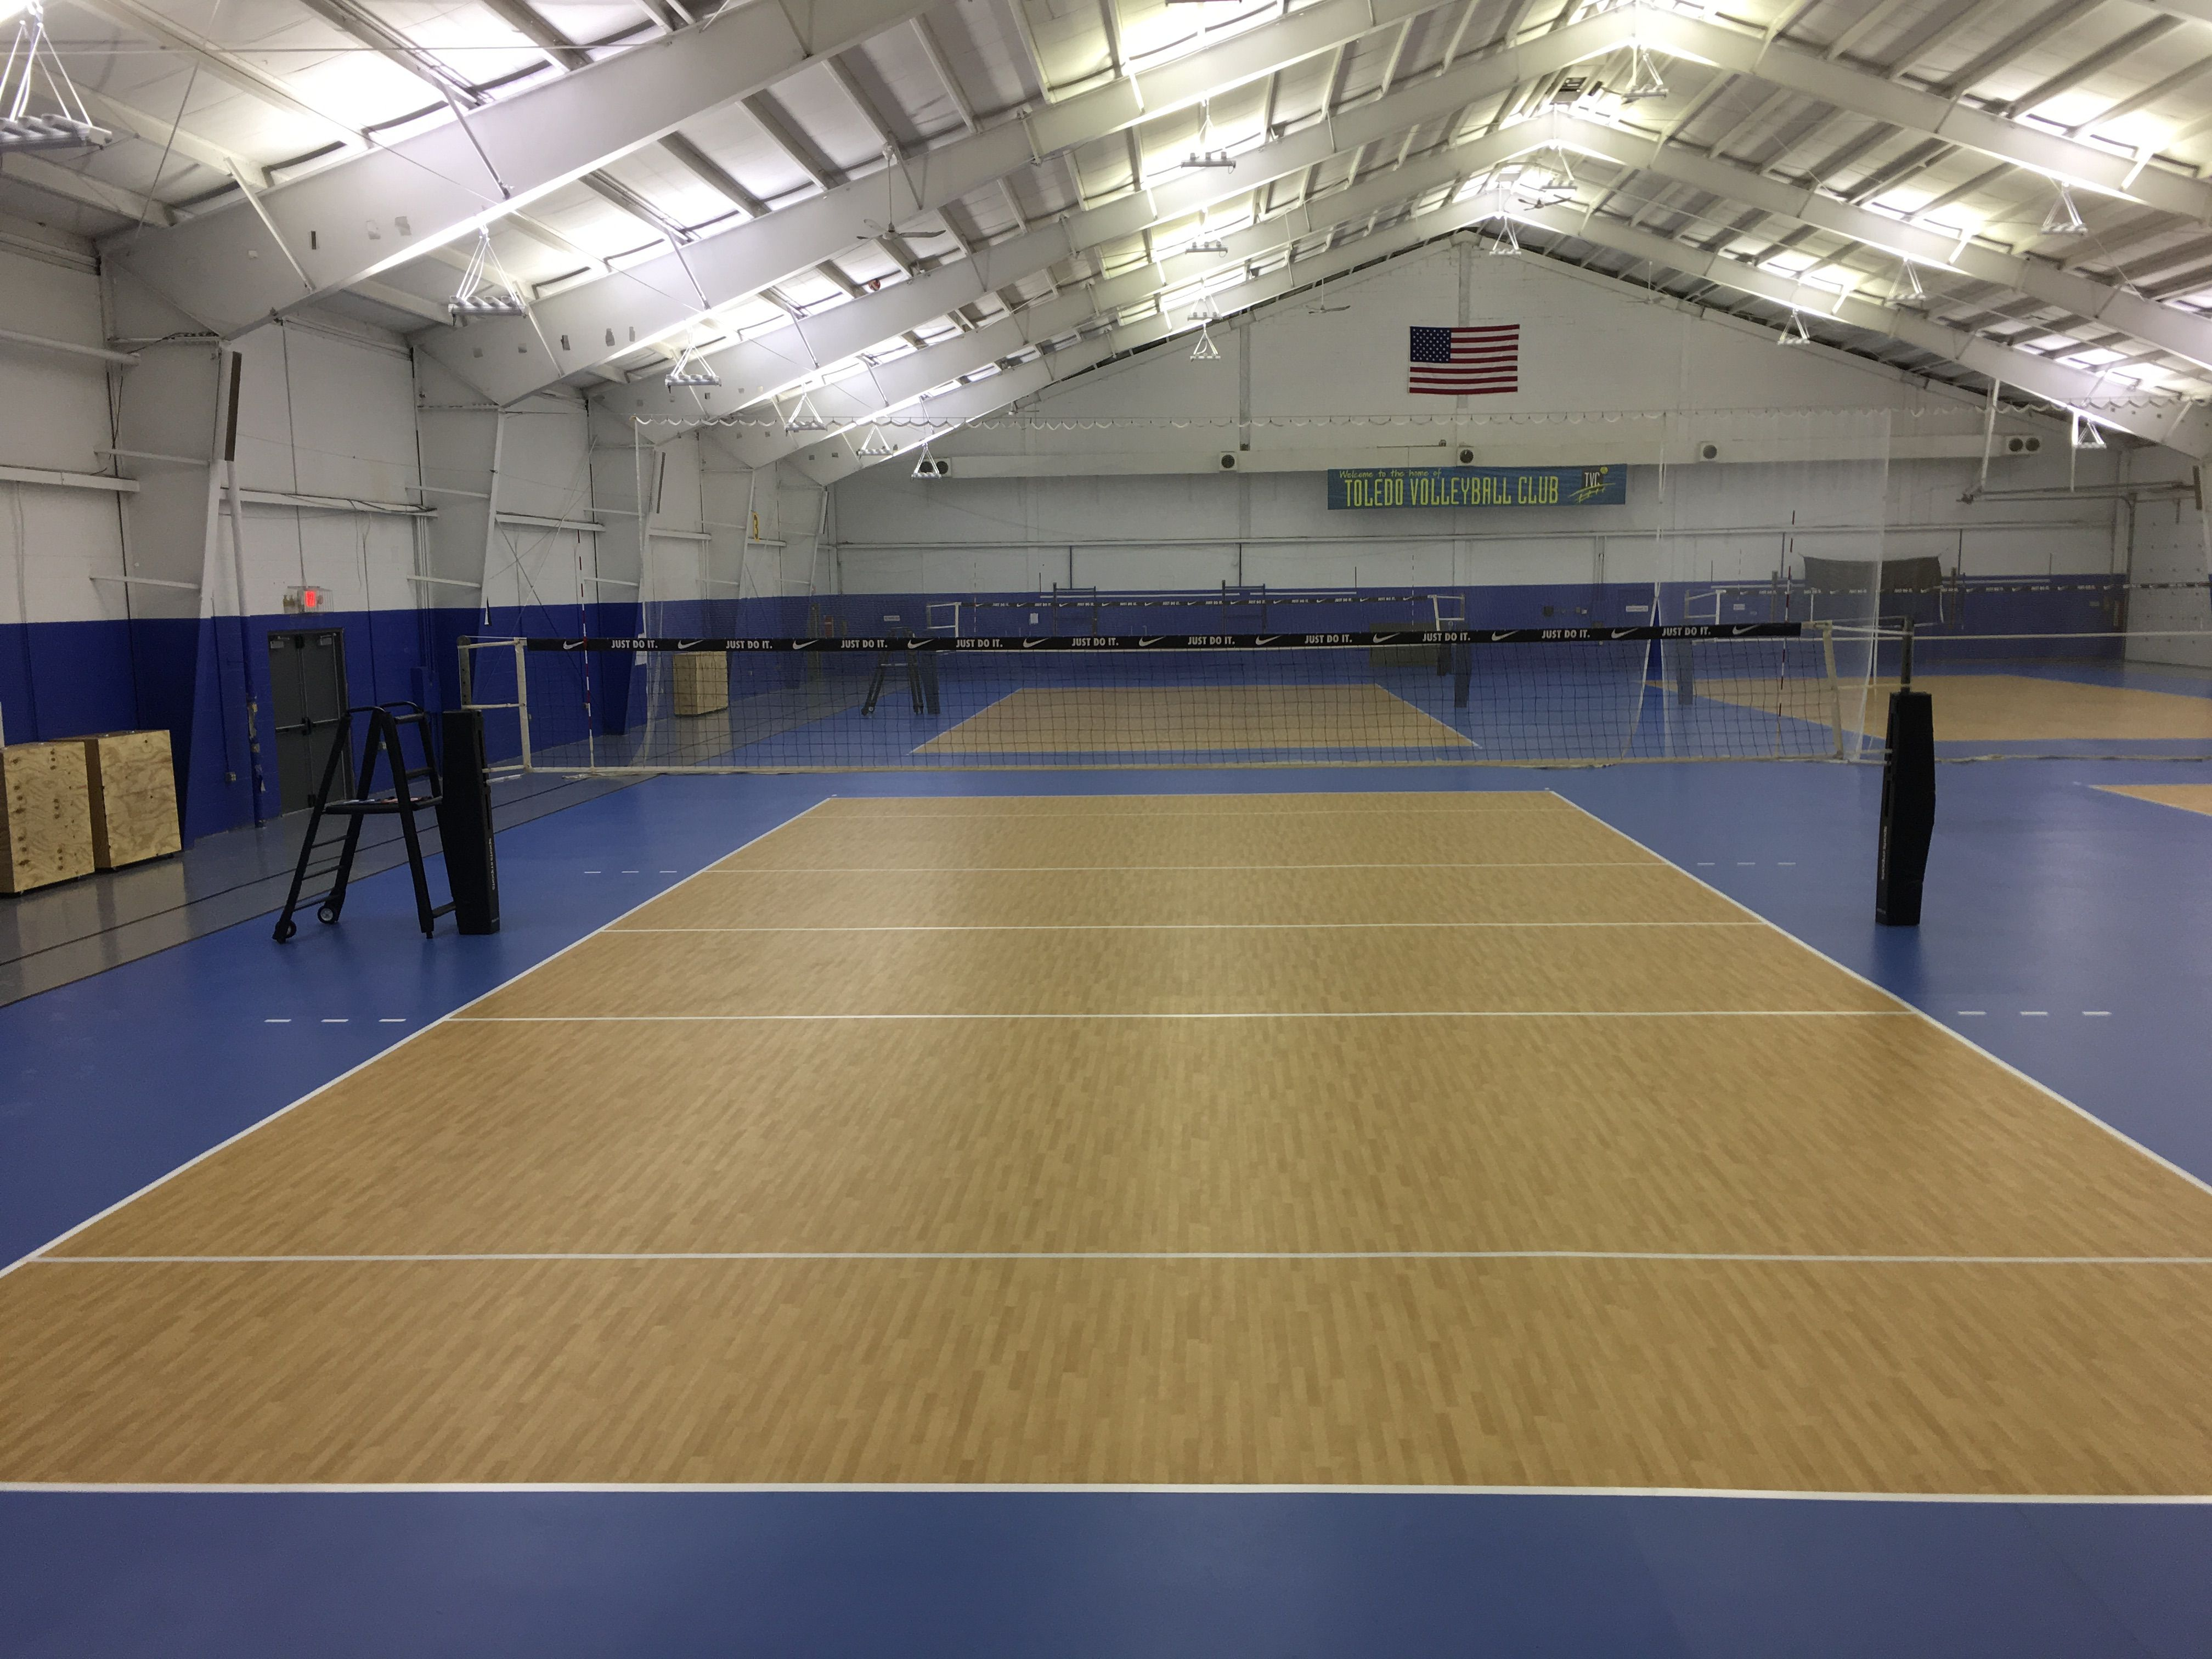 Toledo Volleyball Club In Ohio With Images Volleyball Volleyball Clubs Outdoor Volleyball Net